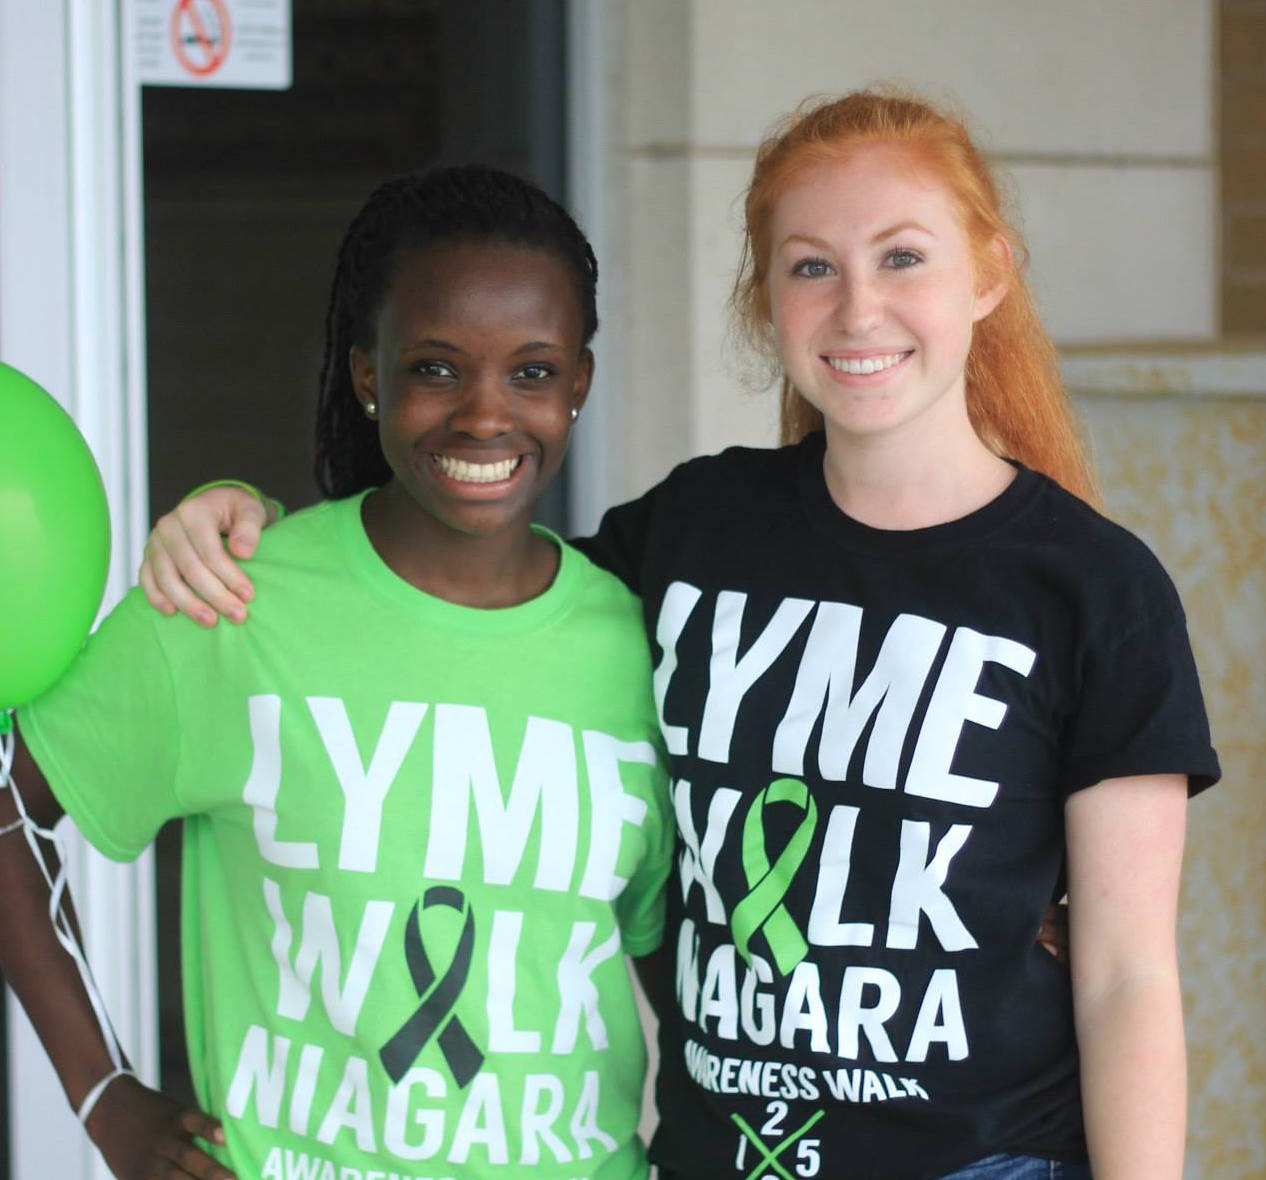 The author and her friend wearing Lyme Walk t-shirts